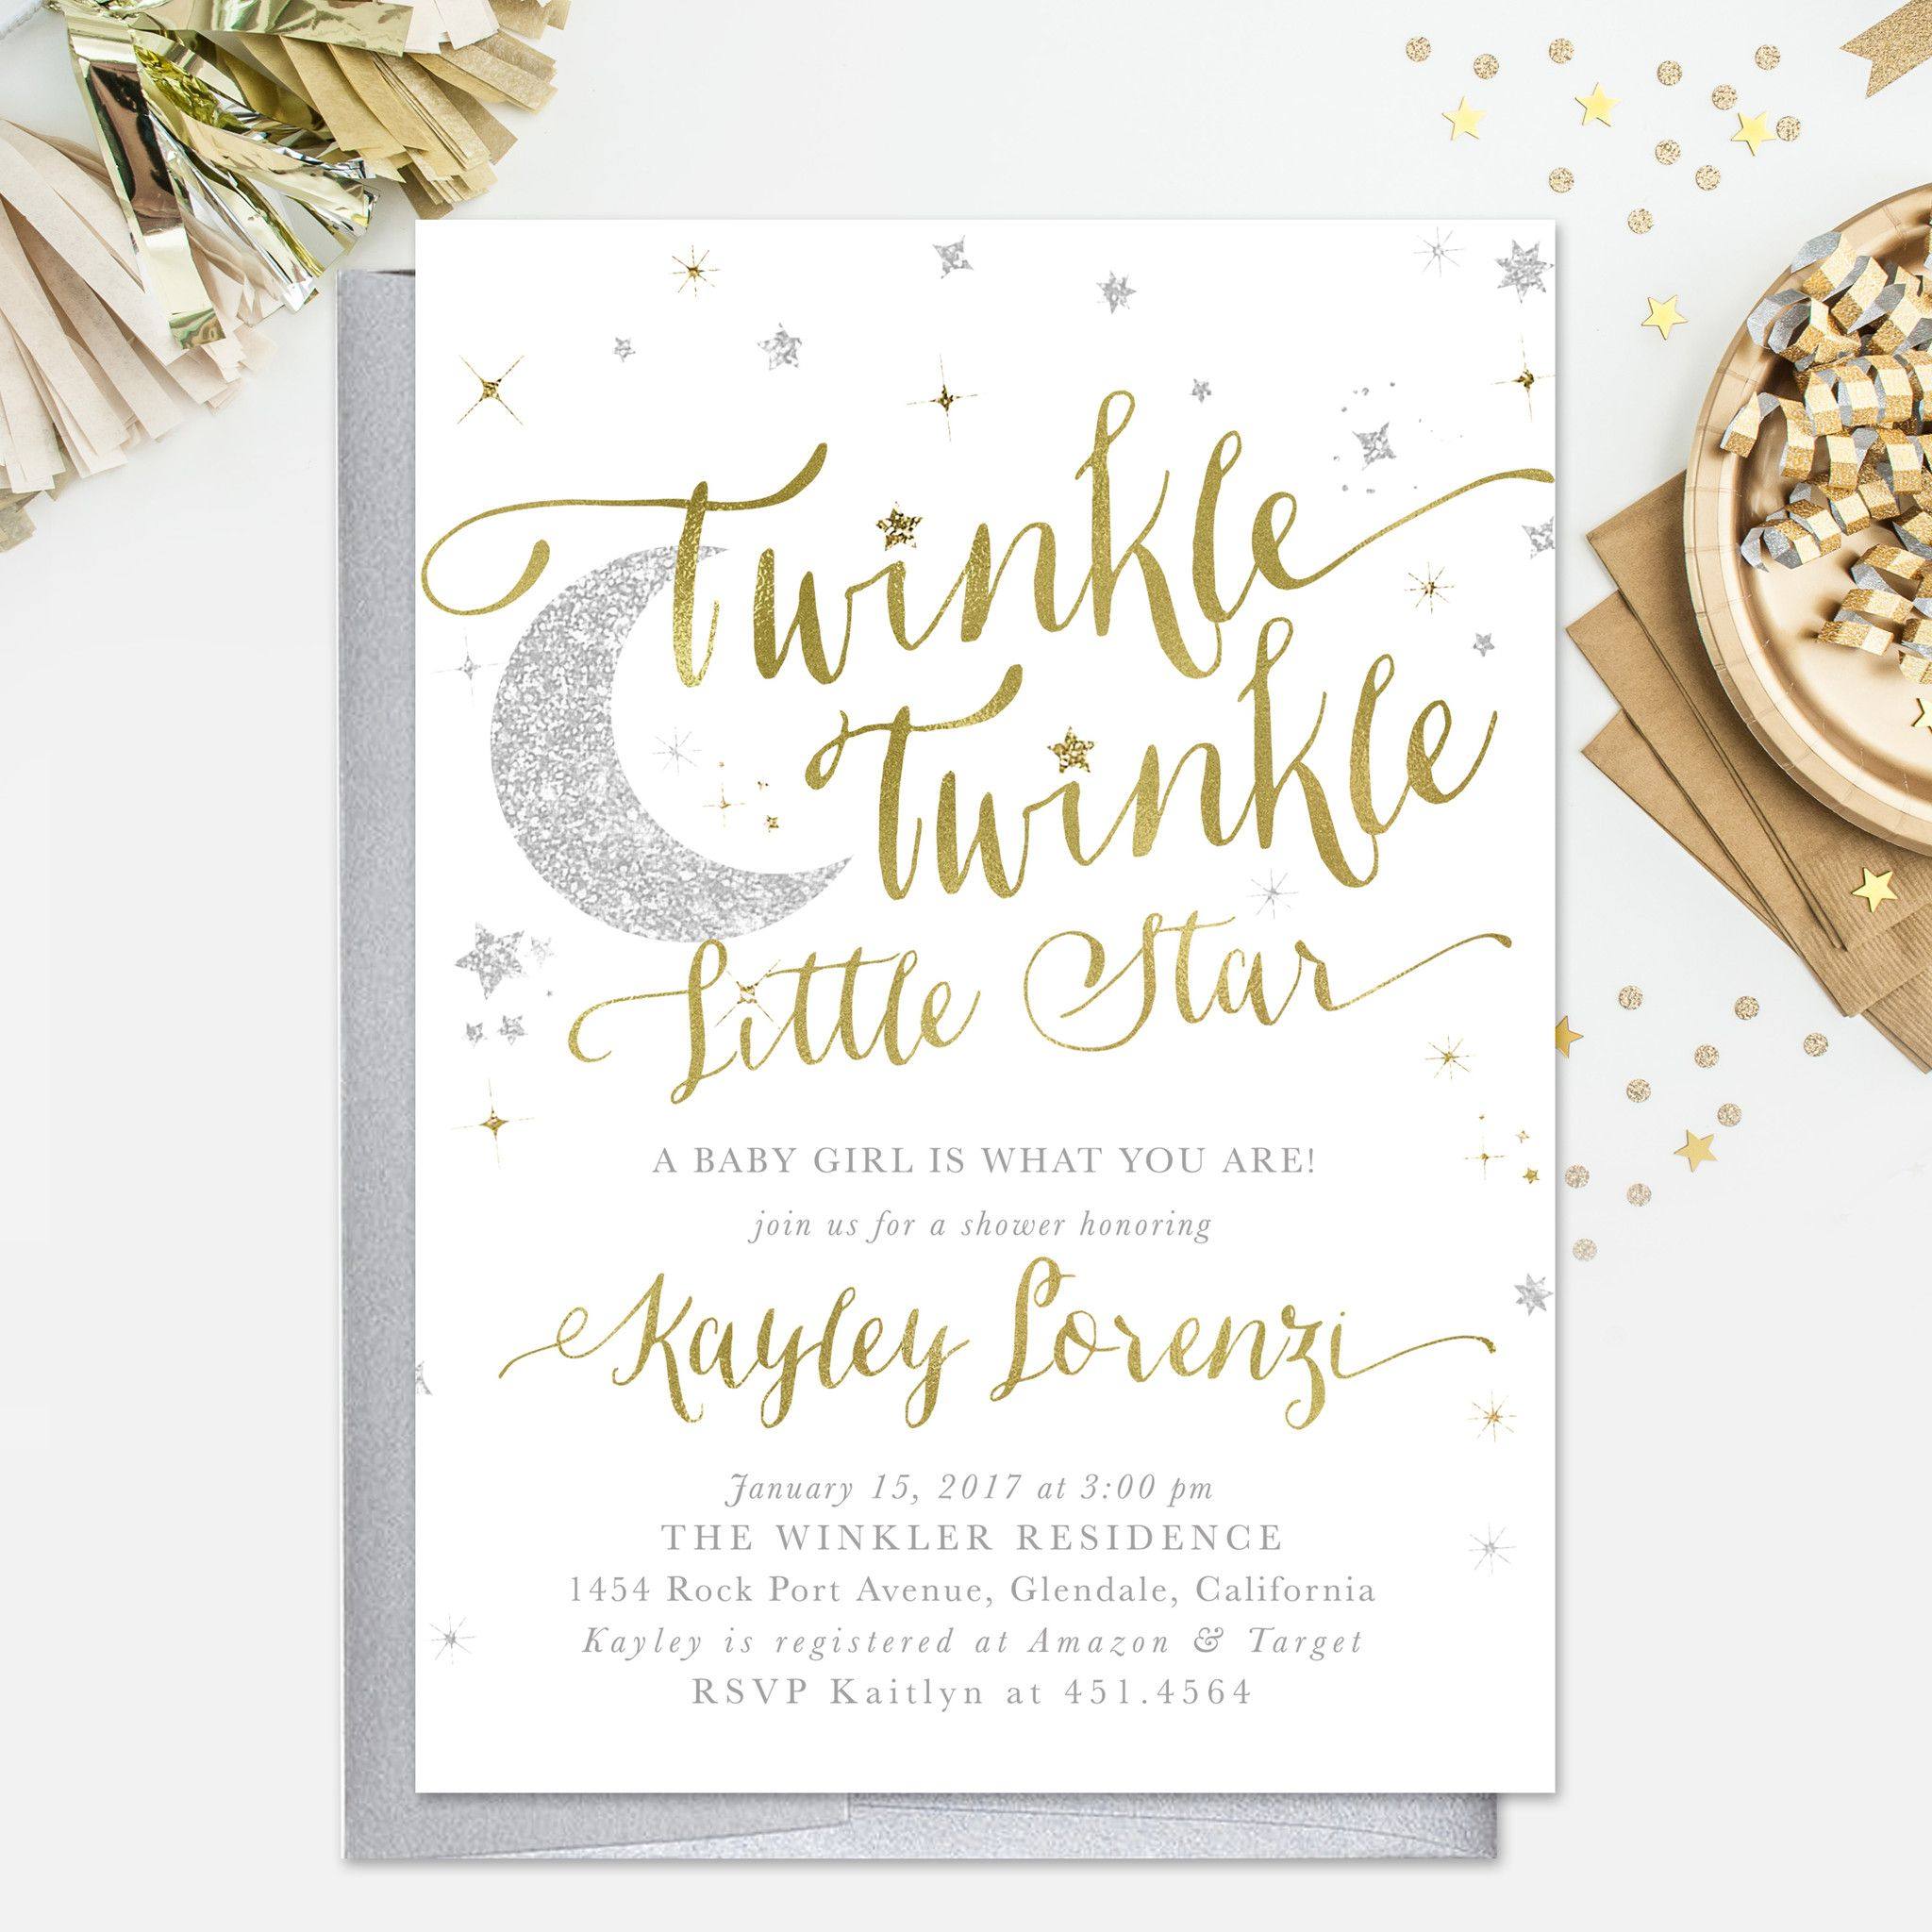 Twinkle Twinkle Little Star Boy or Girl Baby Shower Invitation ...